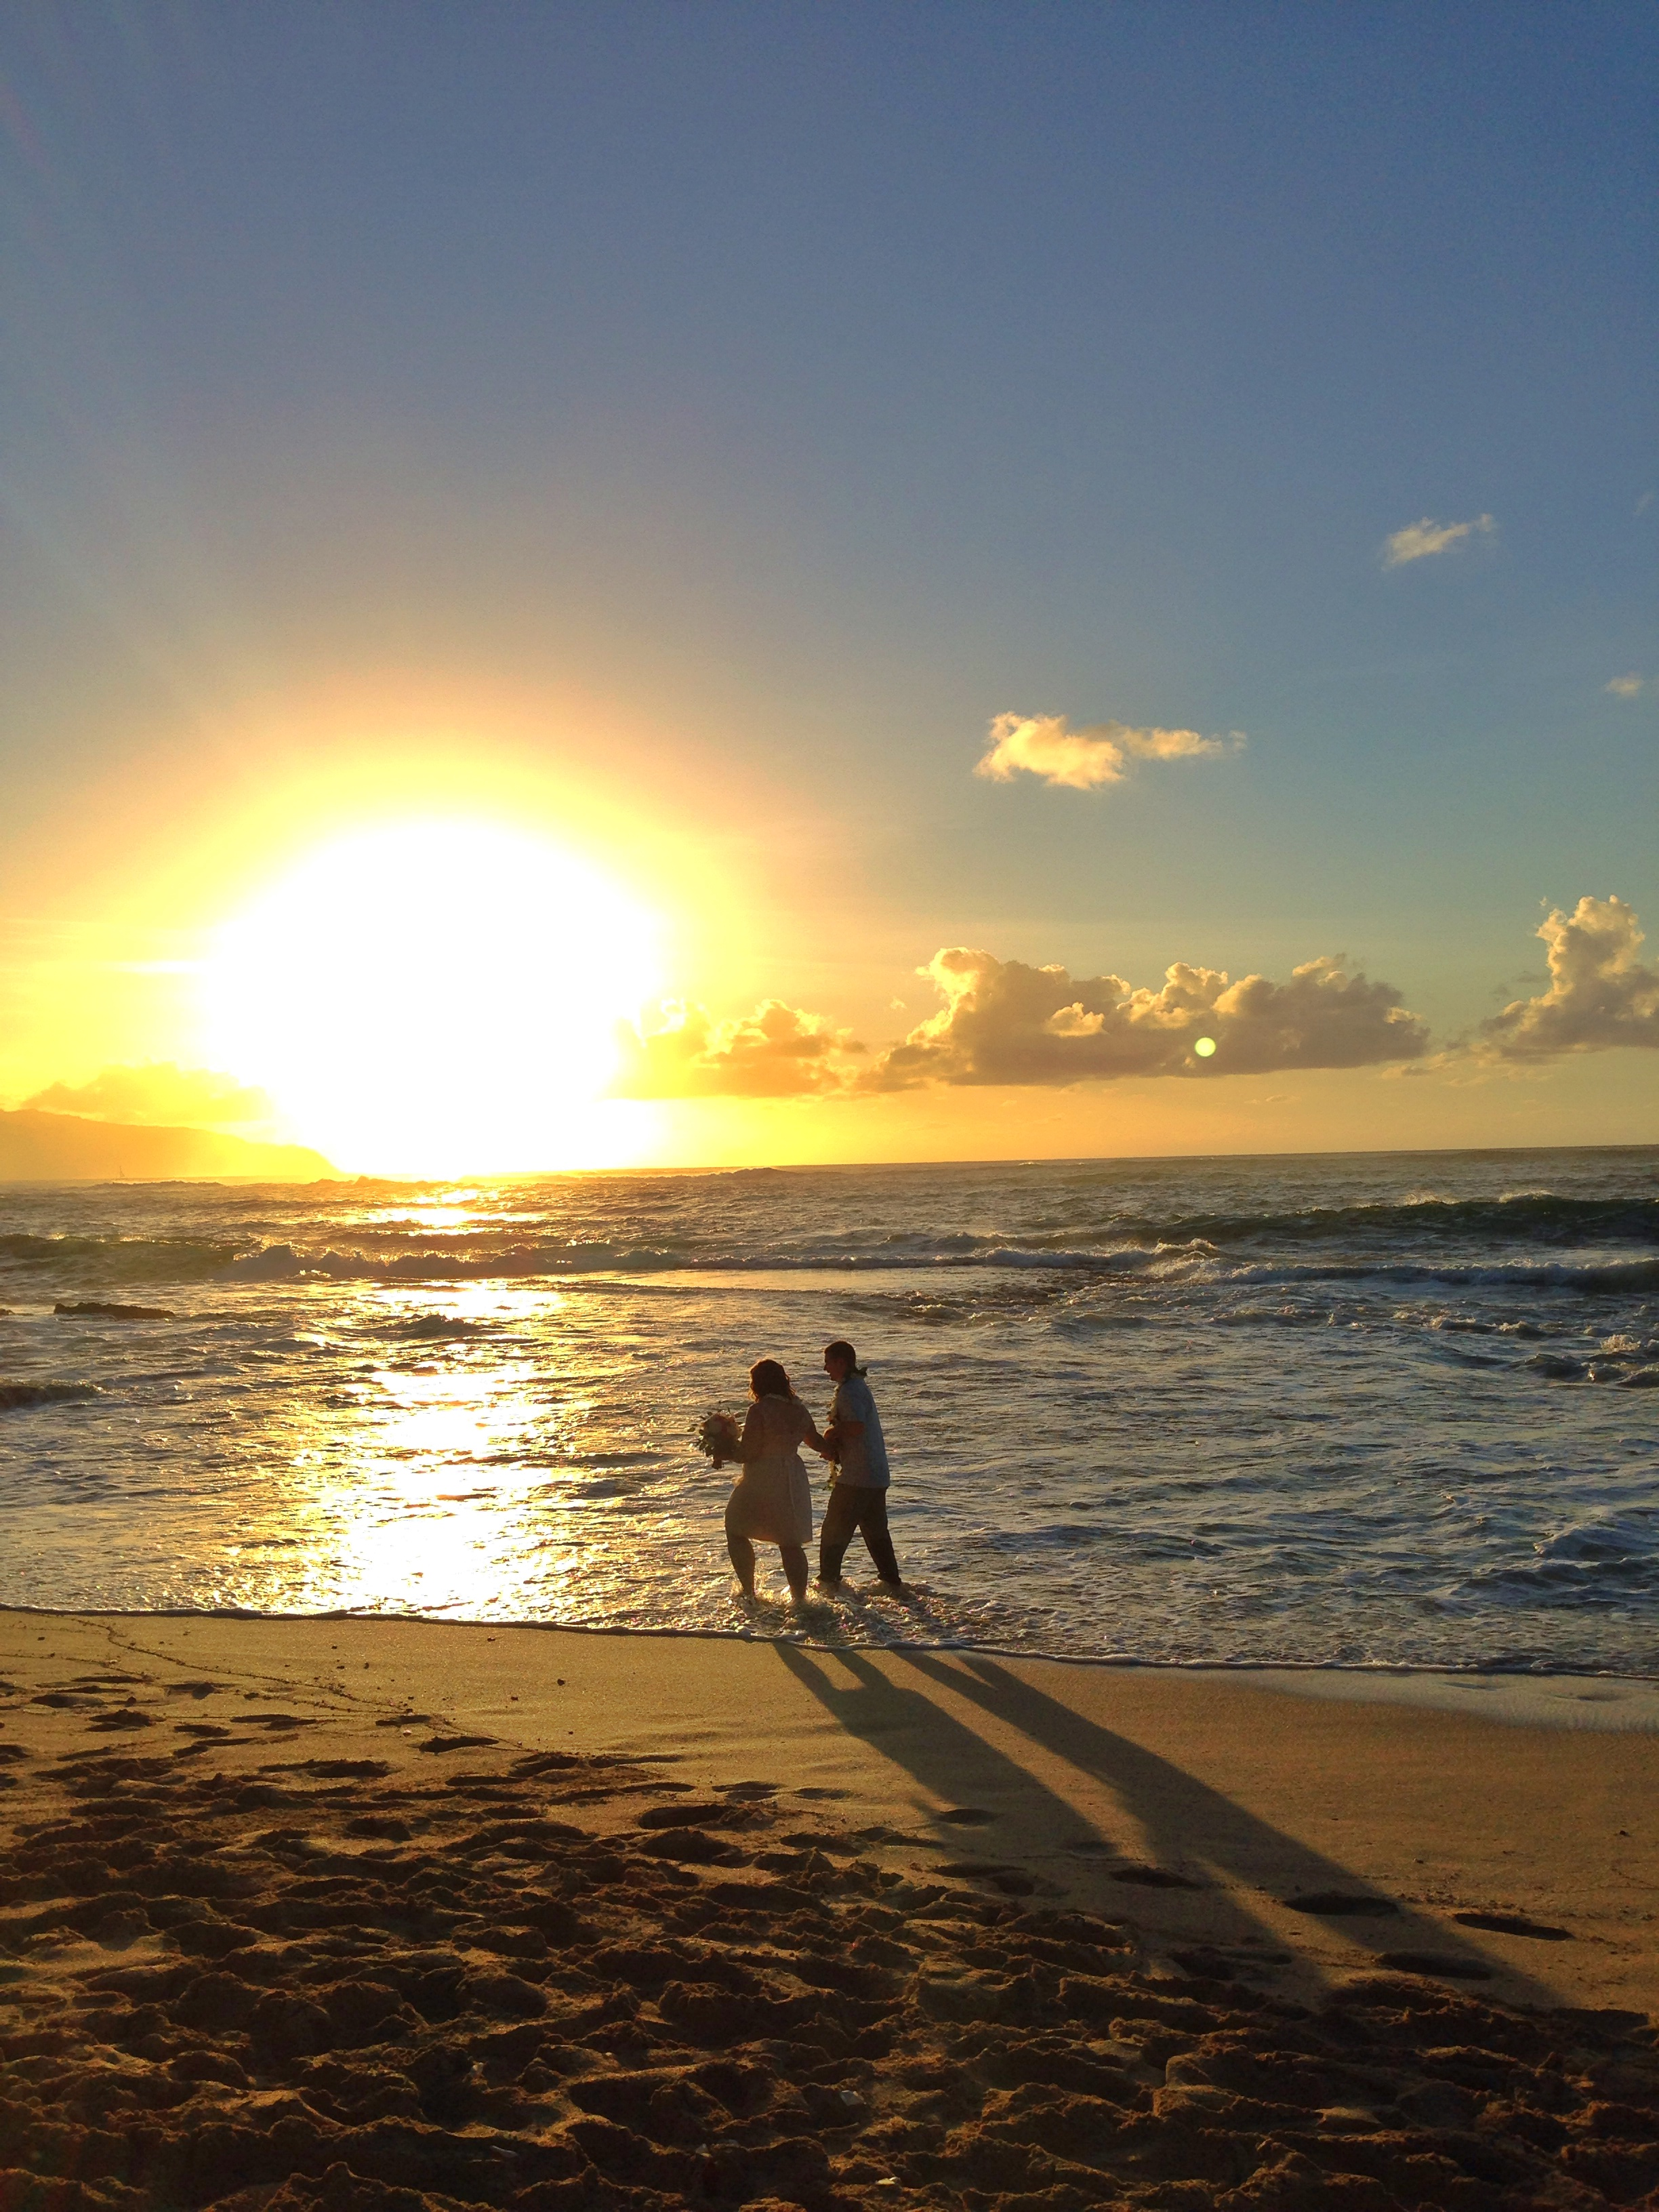 jacqueline-caleb-hawaii-beach-north-shore-sunset